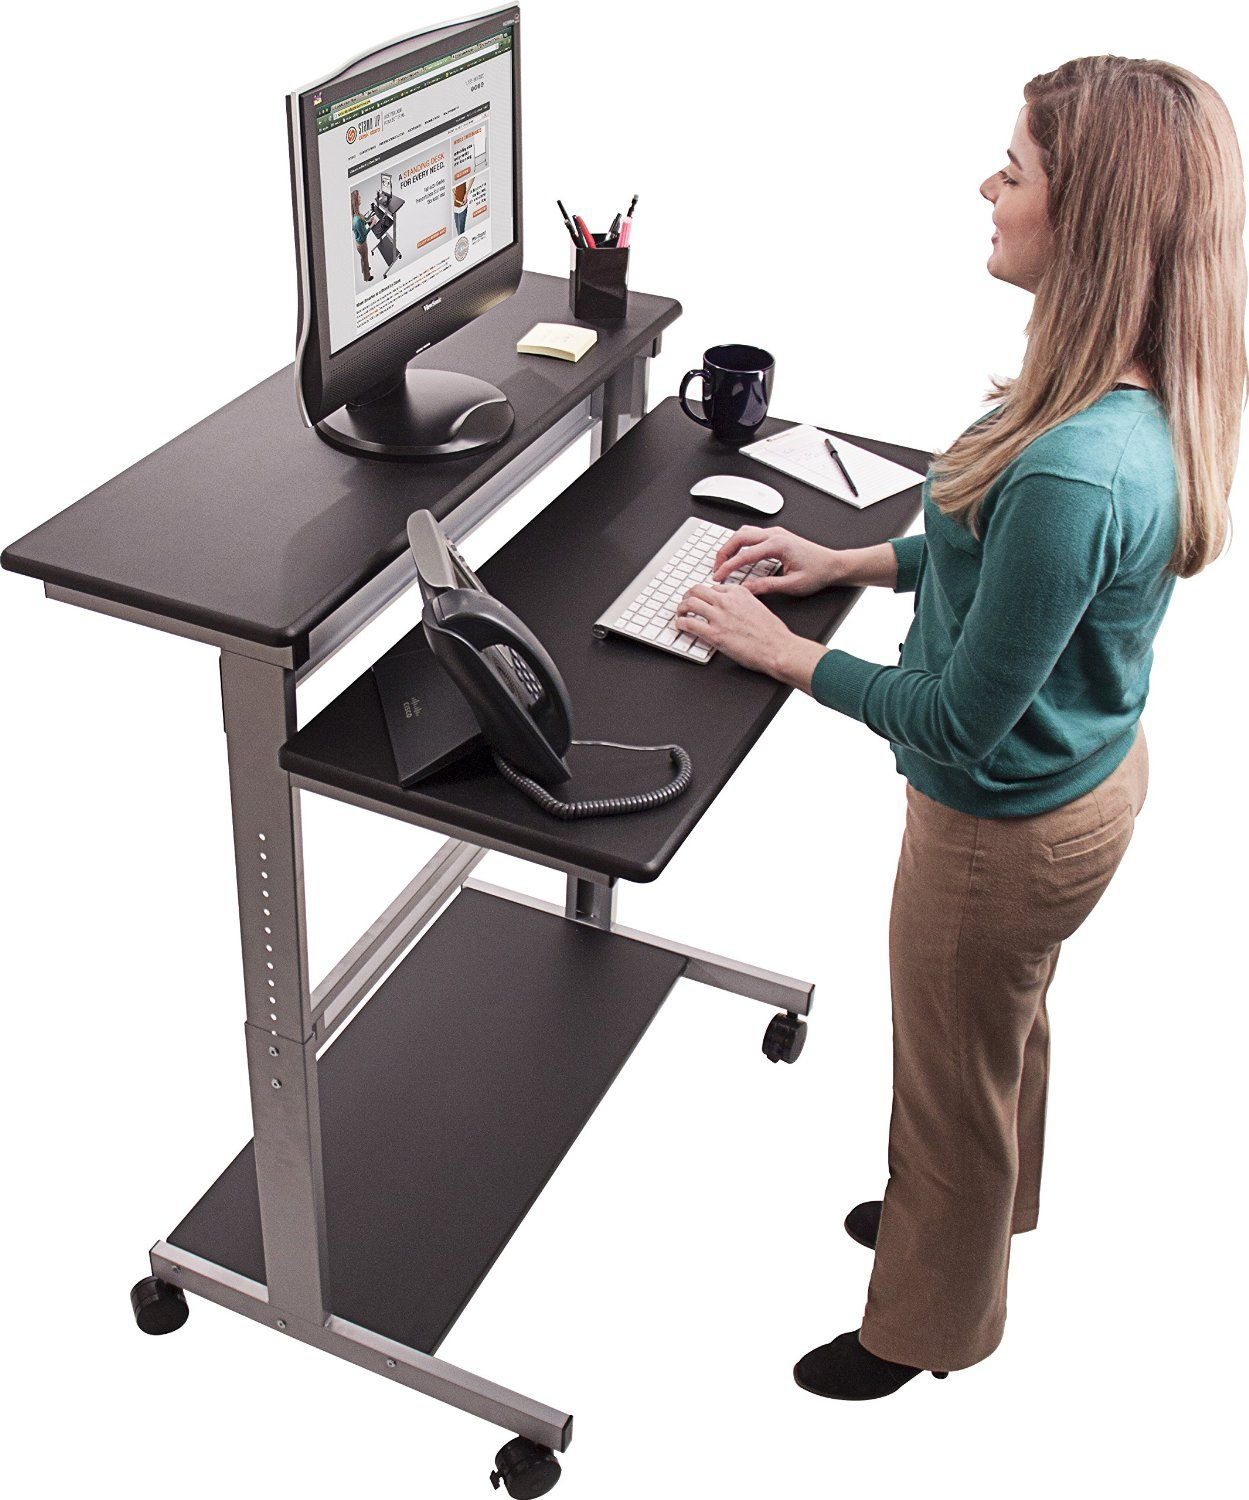 Amazon com  40  Black Shelves Mobile Ergonomic Stand Up Desk Computer  Workstation. Amazon com  40  Black Shelves Mobile Ergonomic Stand Up Desk